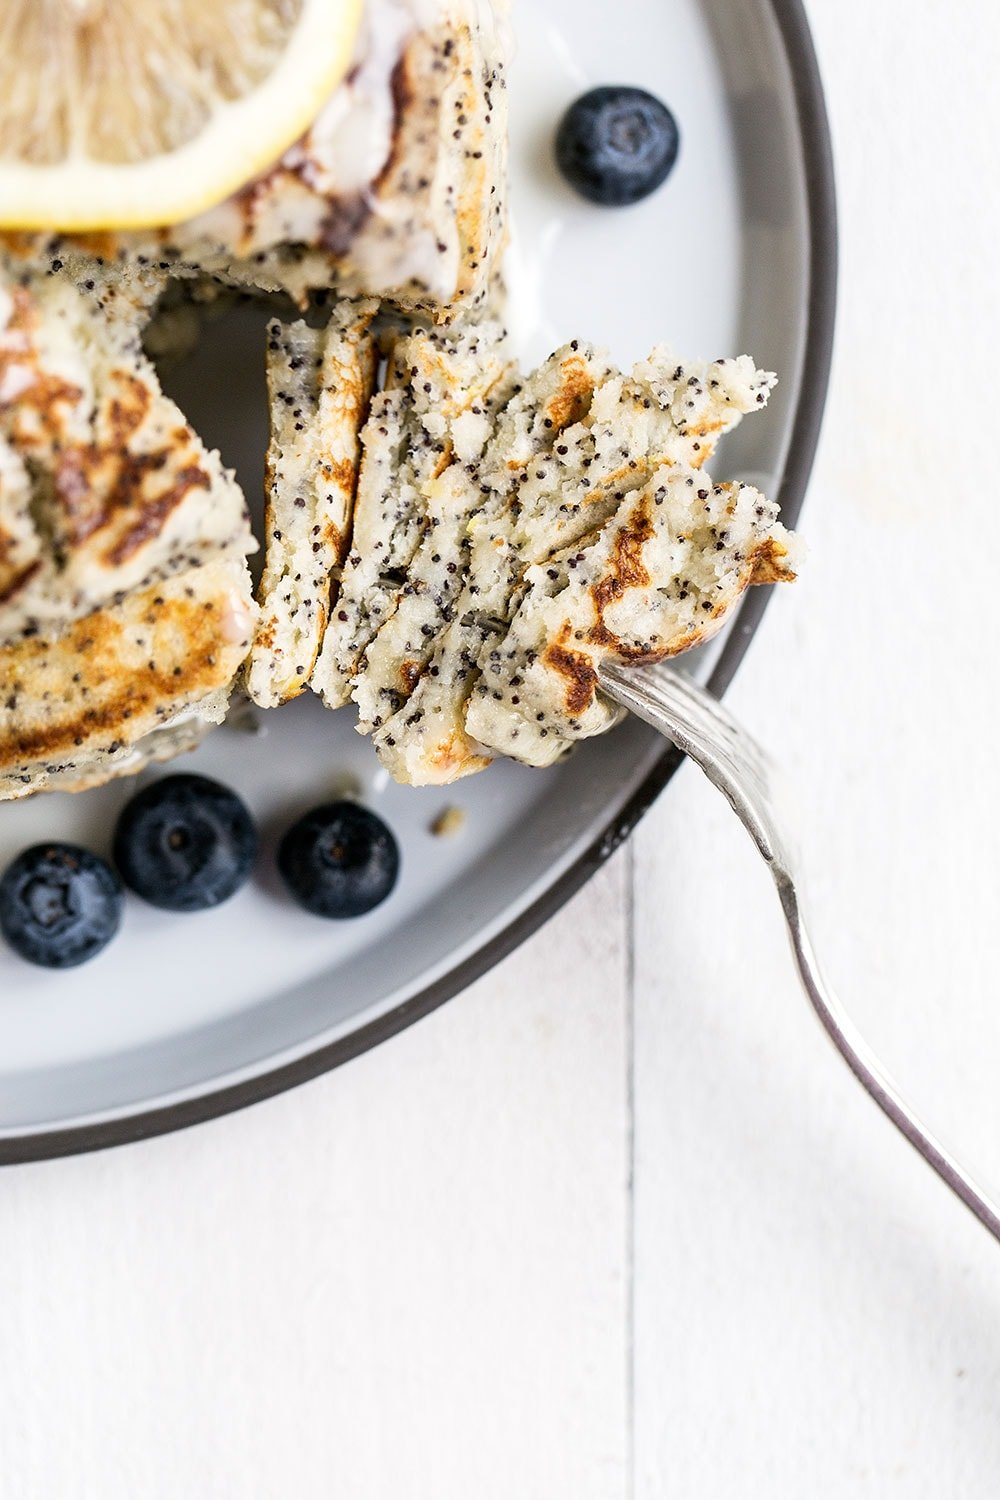 Lemon Poppyseed Pancakes are perfect for a spring Sunday morning, the whole family will love this recipe!